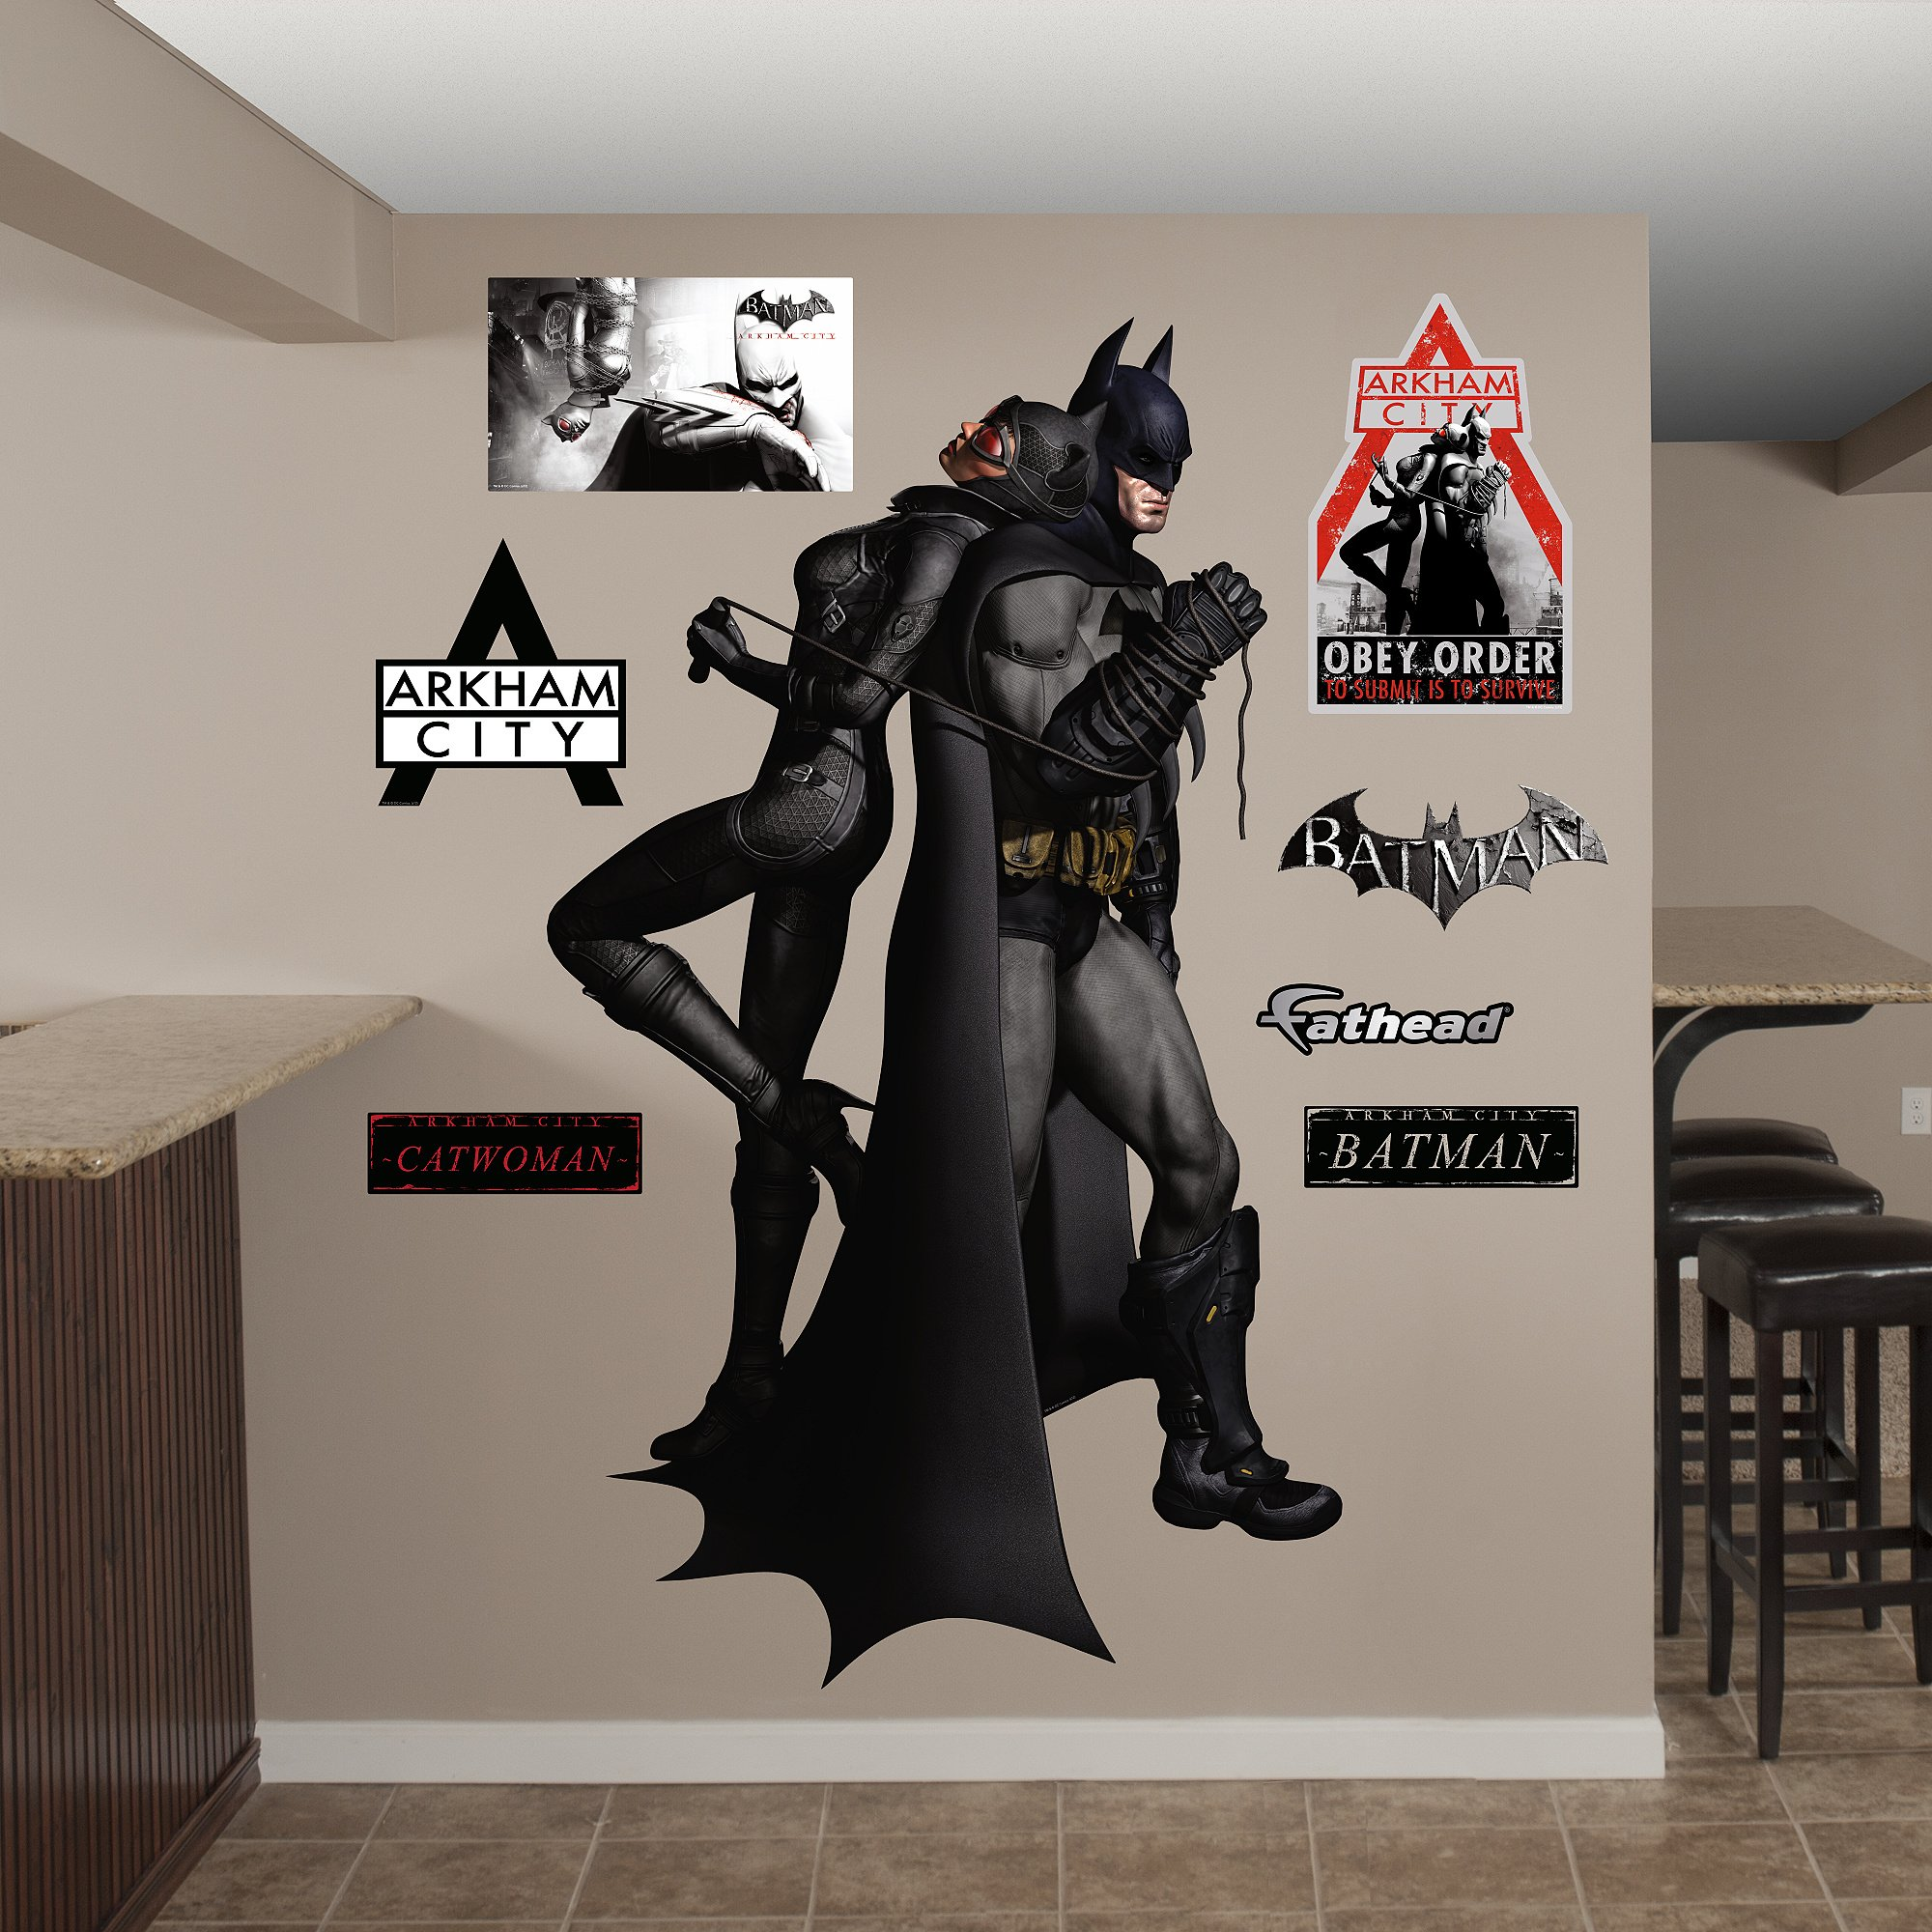 FATHEAD Batman Catwoman Duo: Arkham City Graphic Wall Décor by FATHEAD